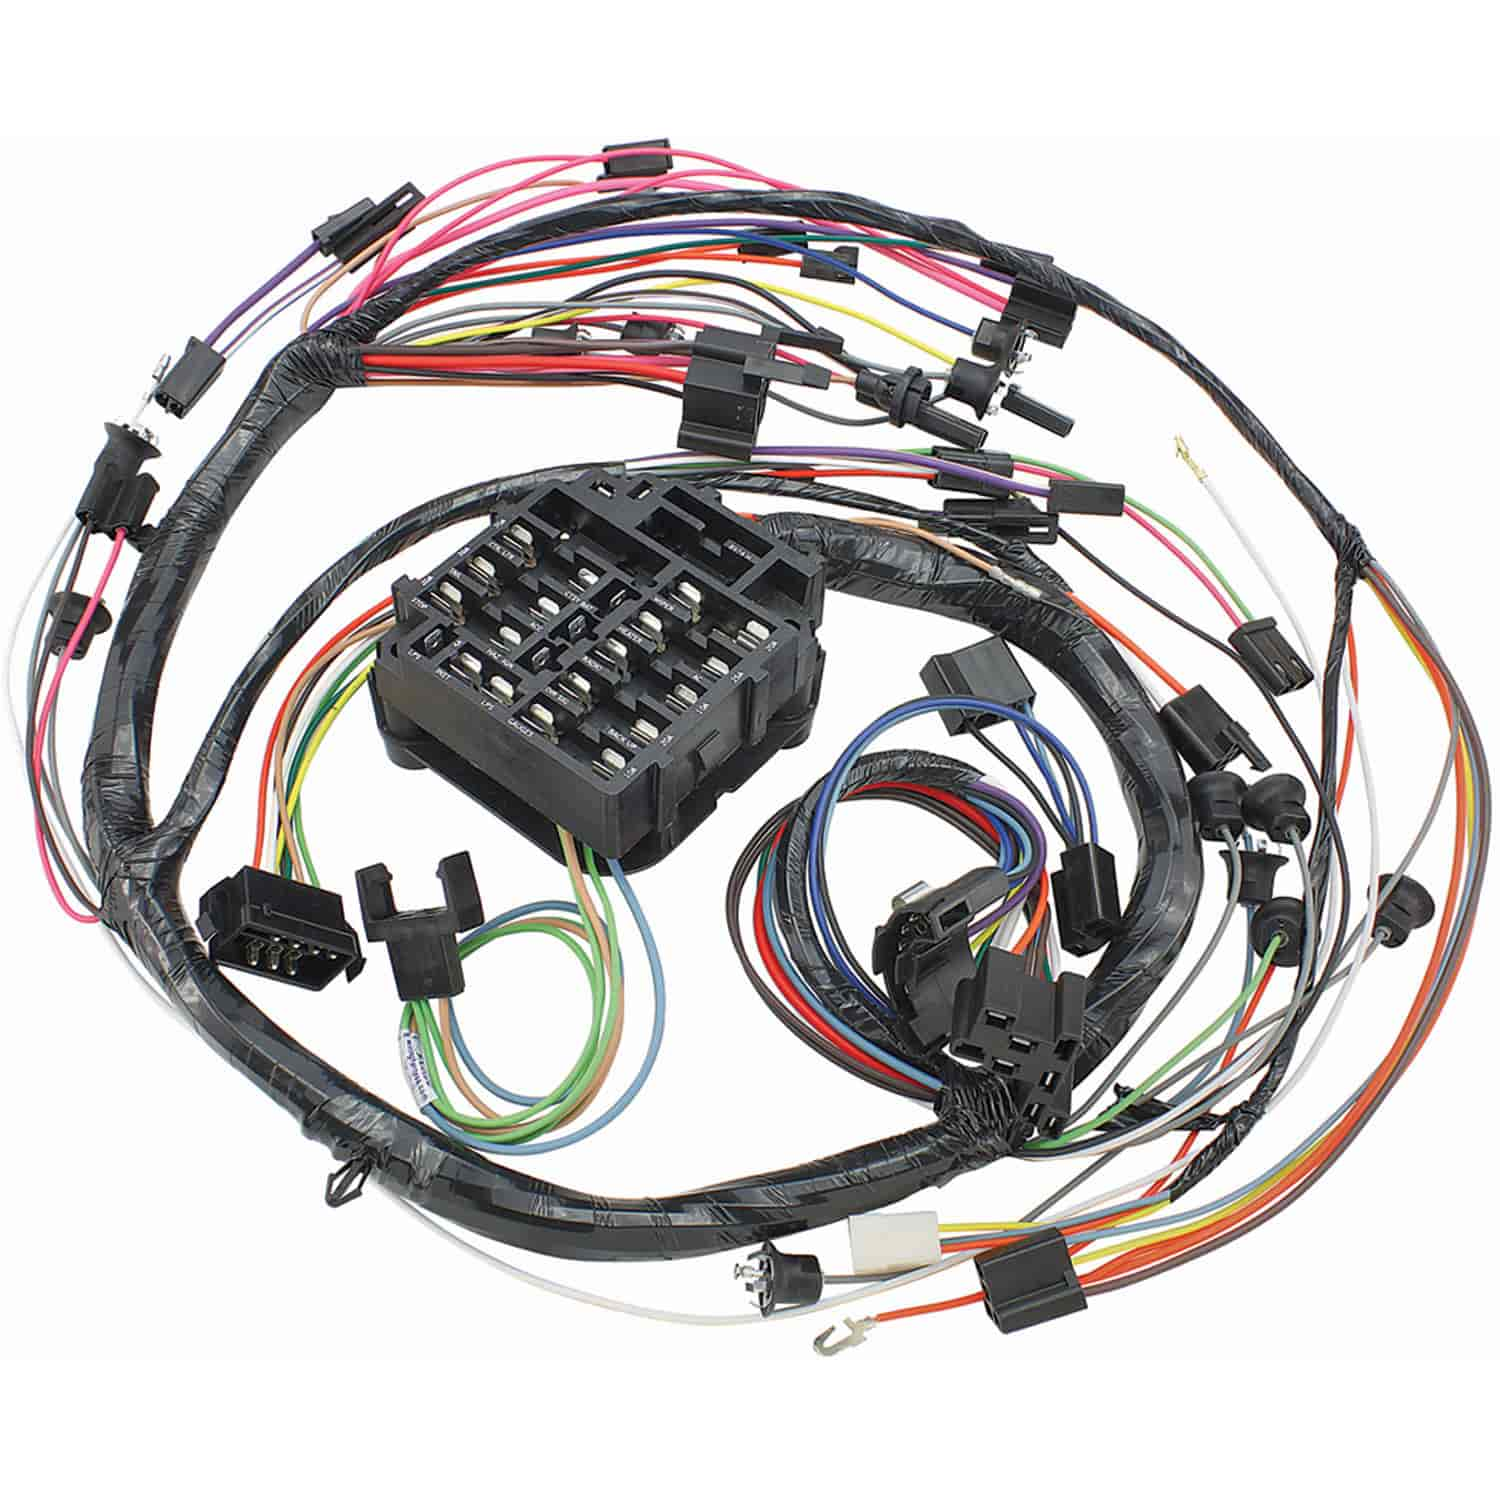 hight resolution of el camino wiring harness images gallery